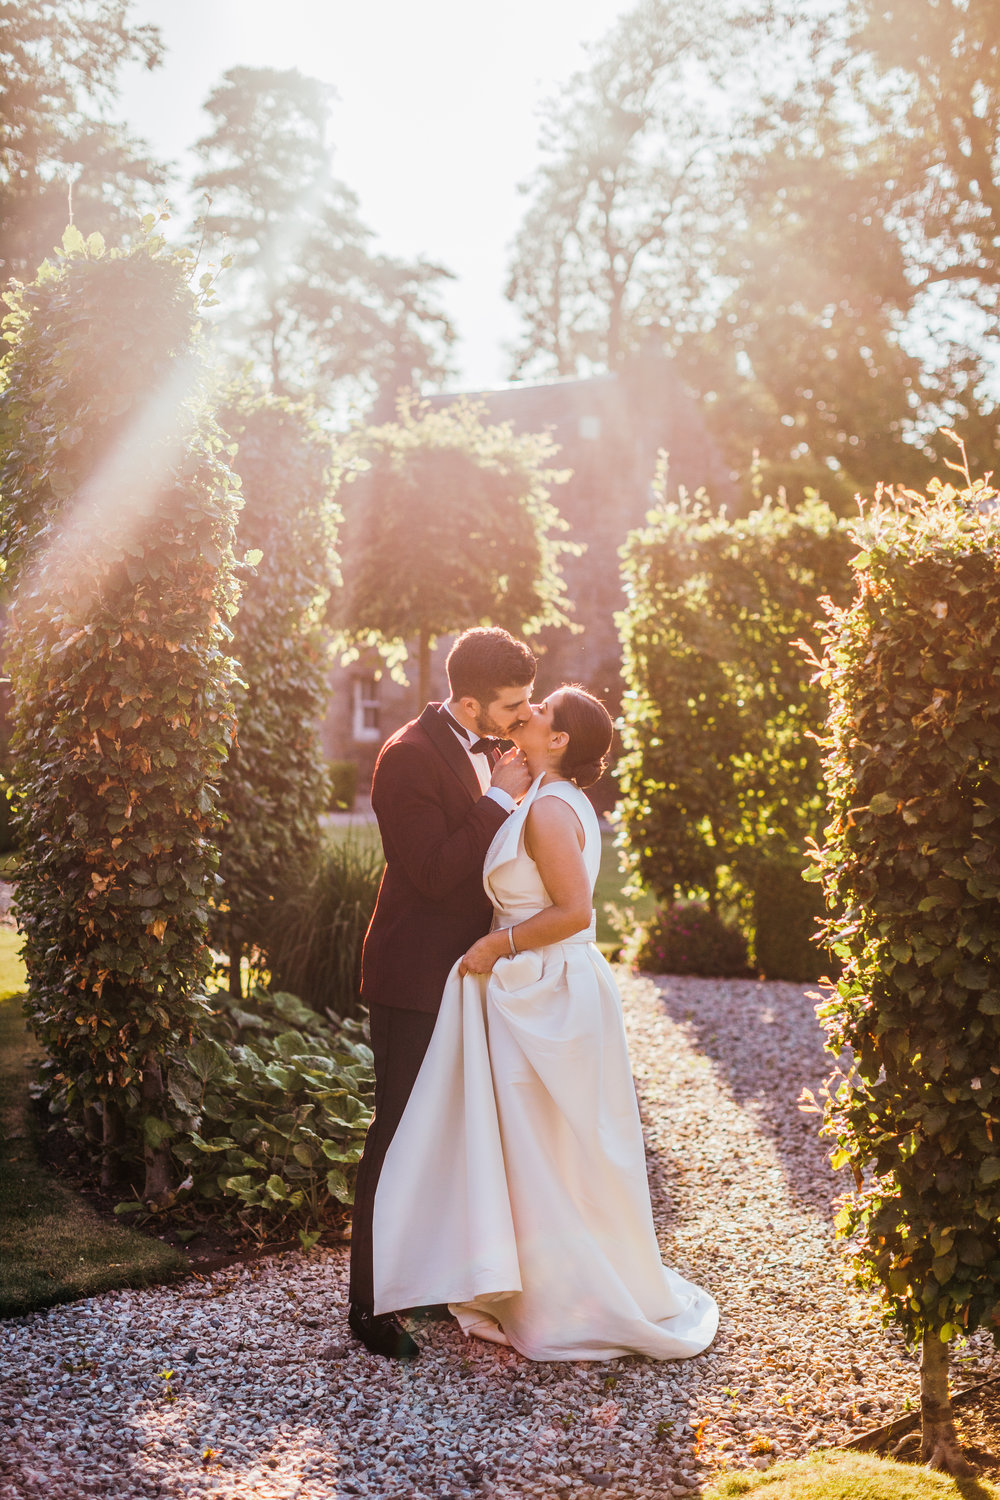 Beautiful portrait of bride and groom kissing outside the Scotland castle surrounded by greenery